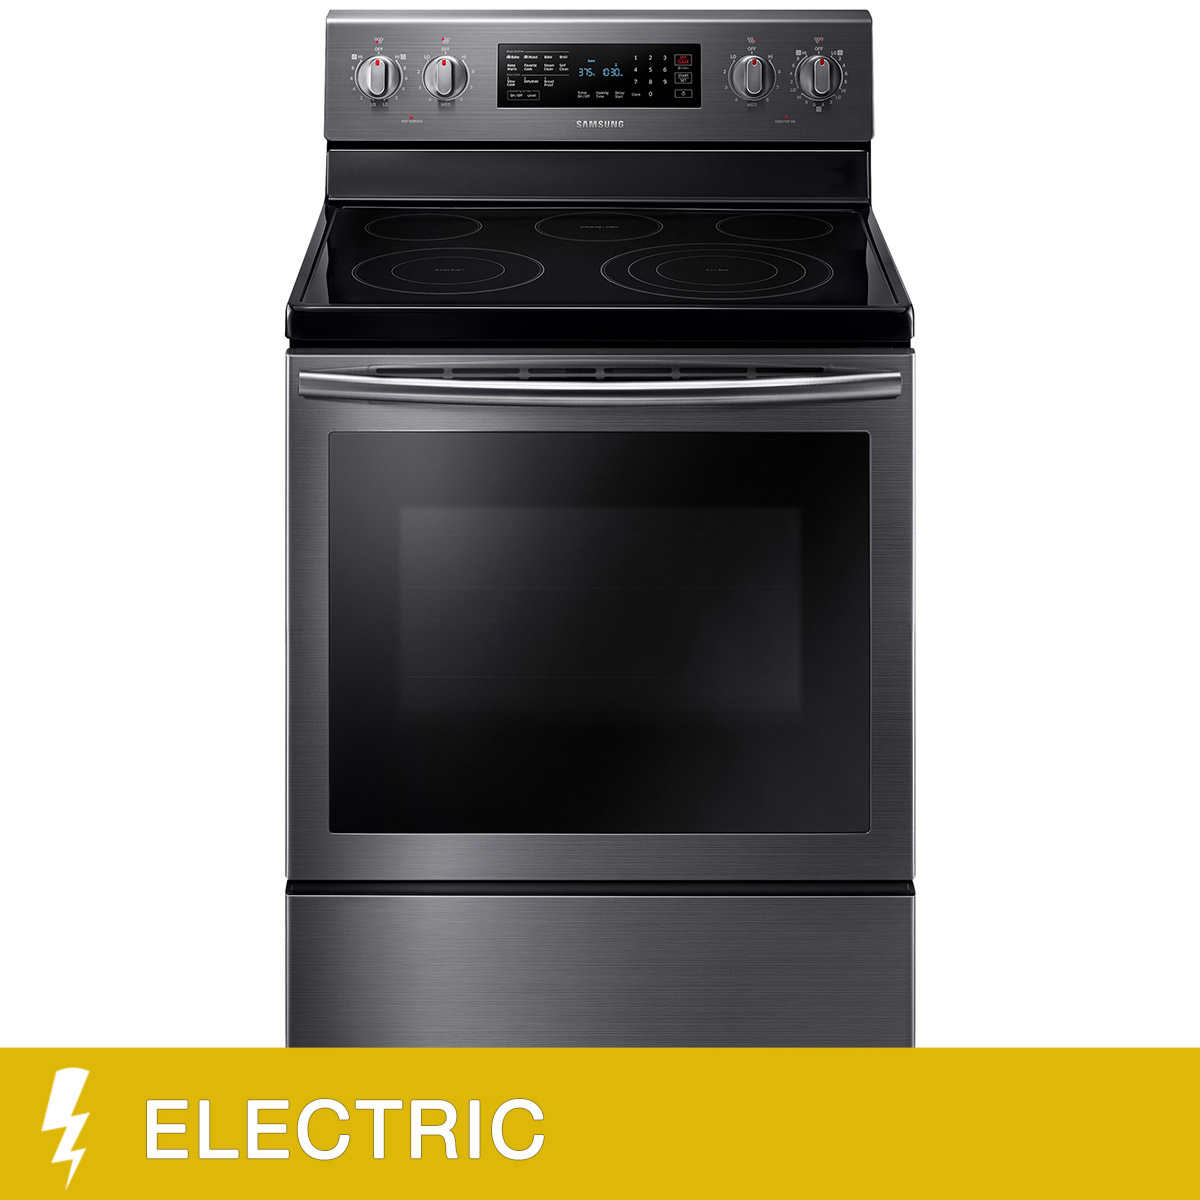 Whirlpool white ice costco canada - Samsung 30 In Black Stainless Steel Electric Range With True Convection Oven